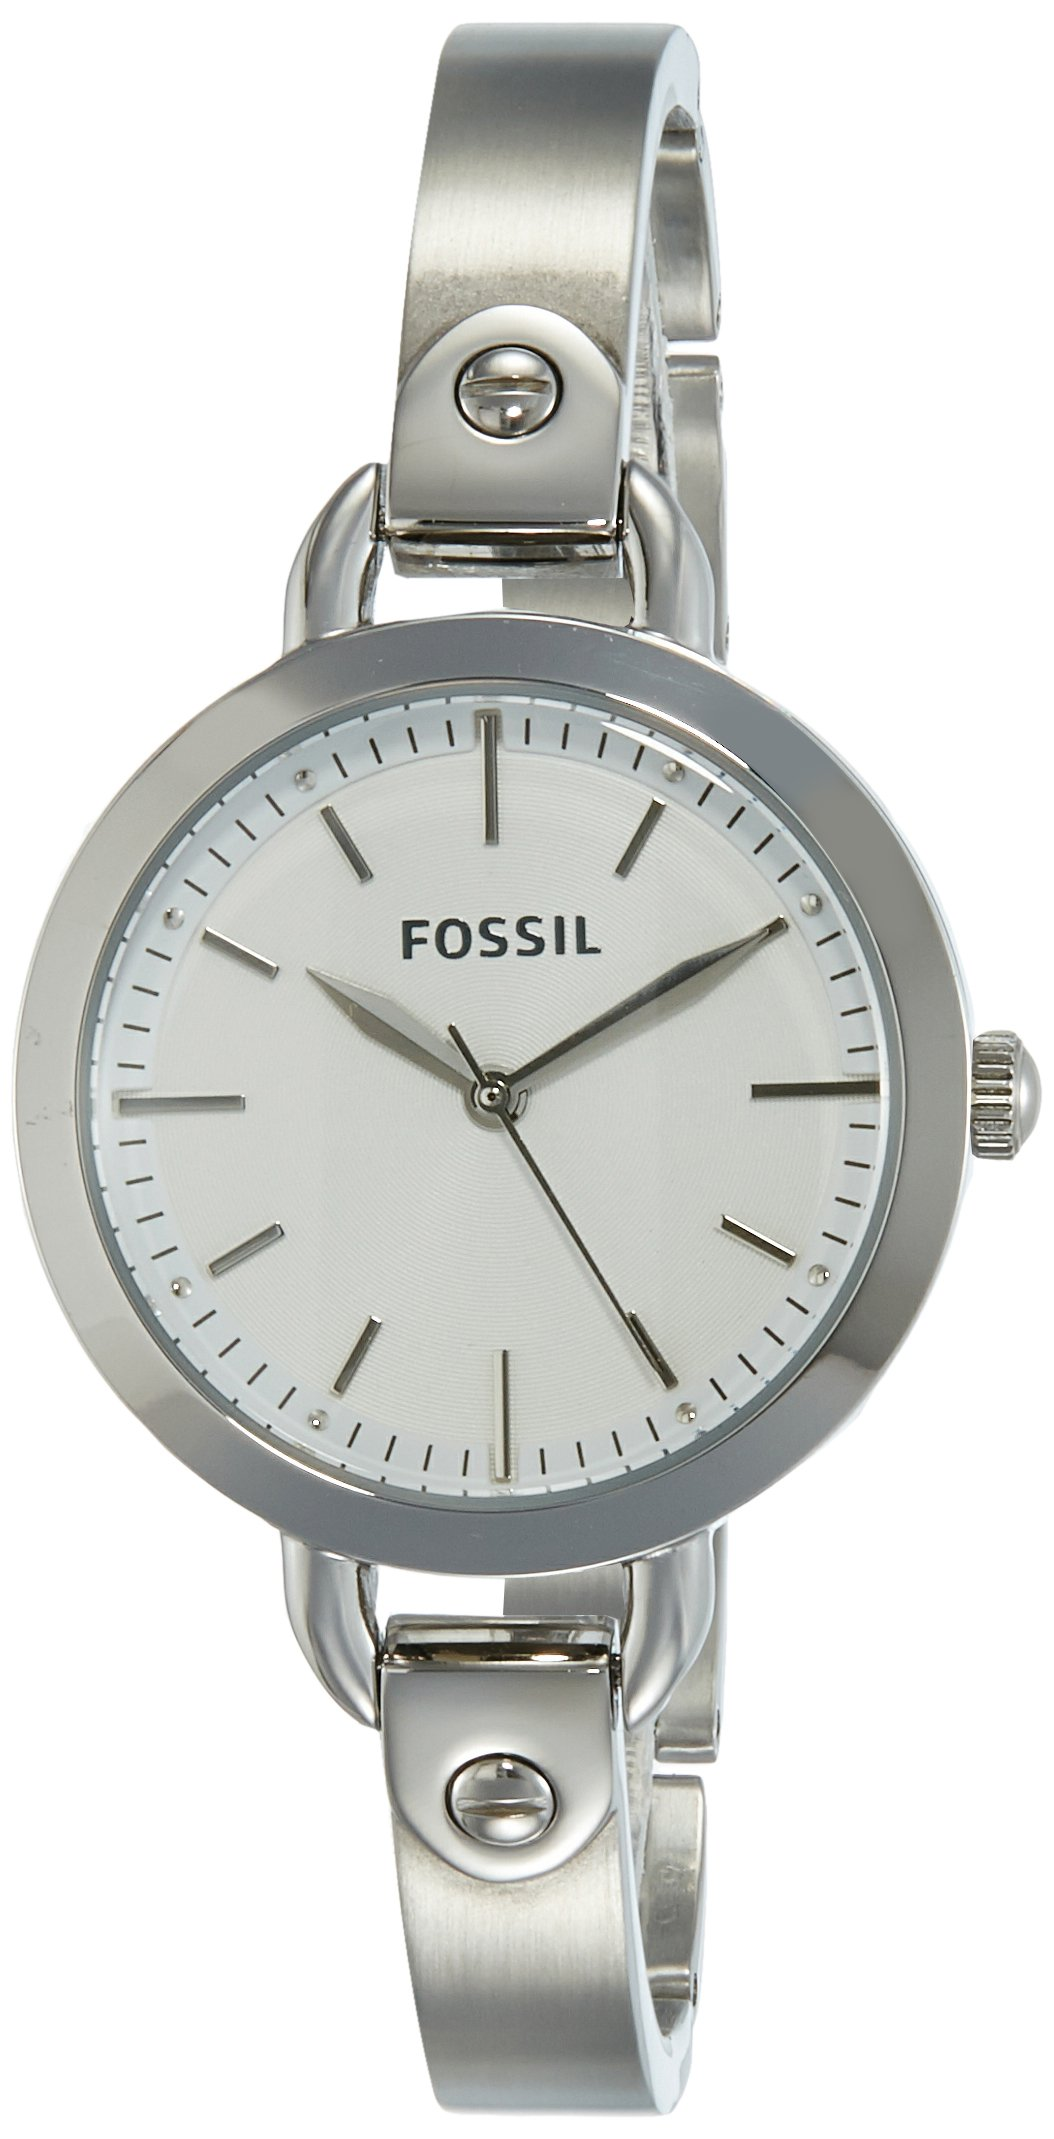 Fossil Analog Silver Dial Women's Watch – BQ3025